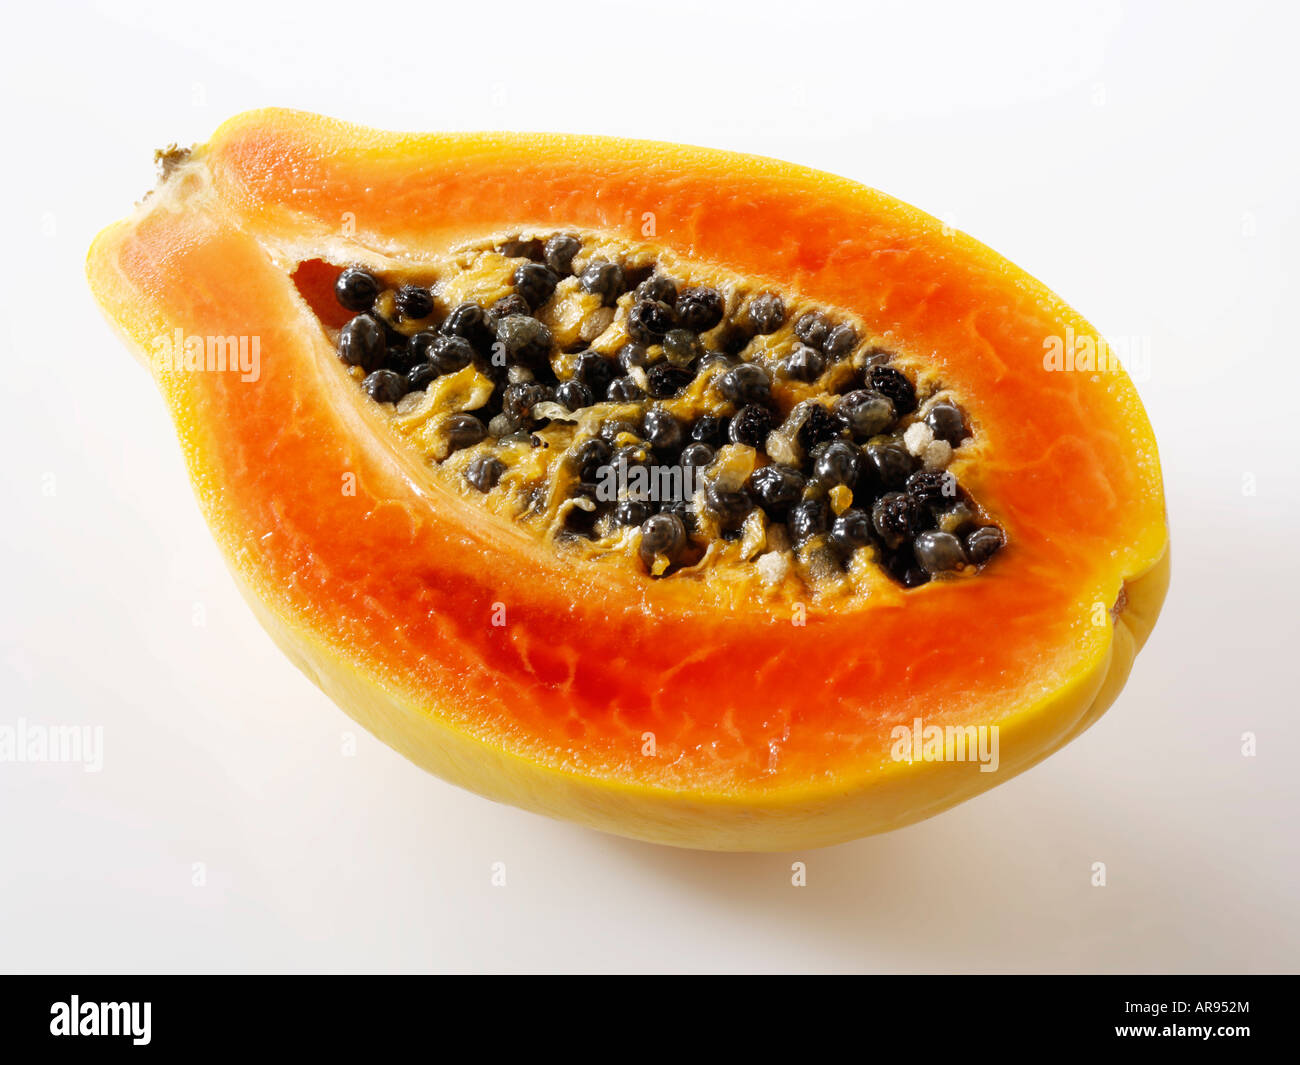 Papaya Tropical Fruit Cut In Half Against A White Background As A